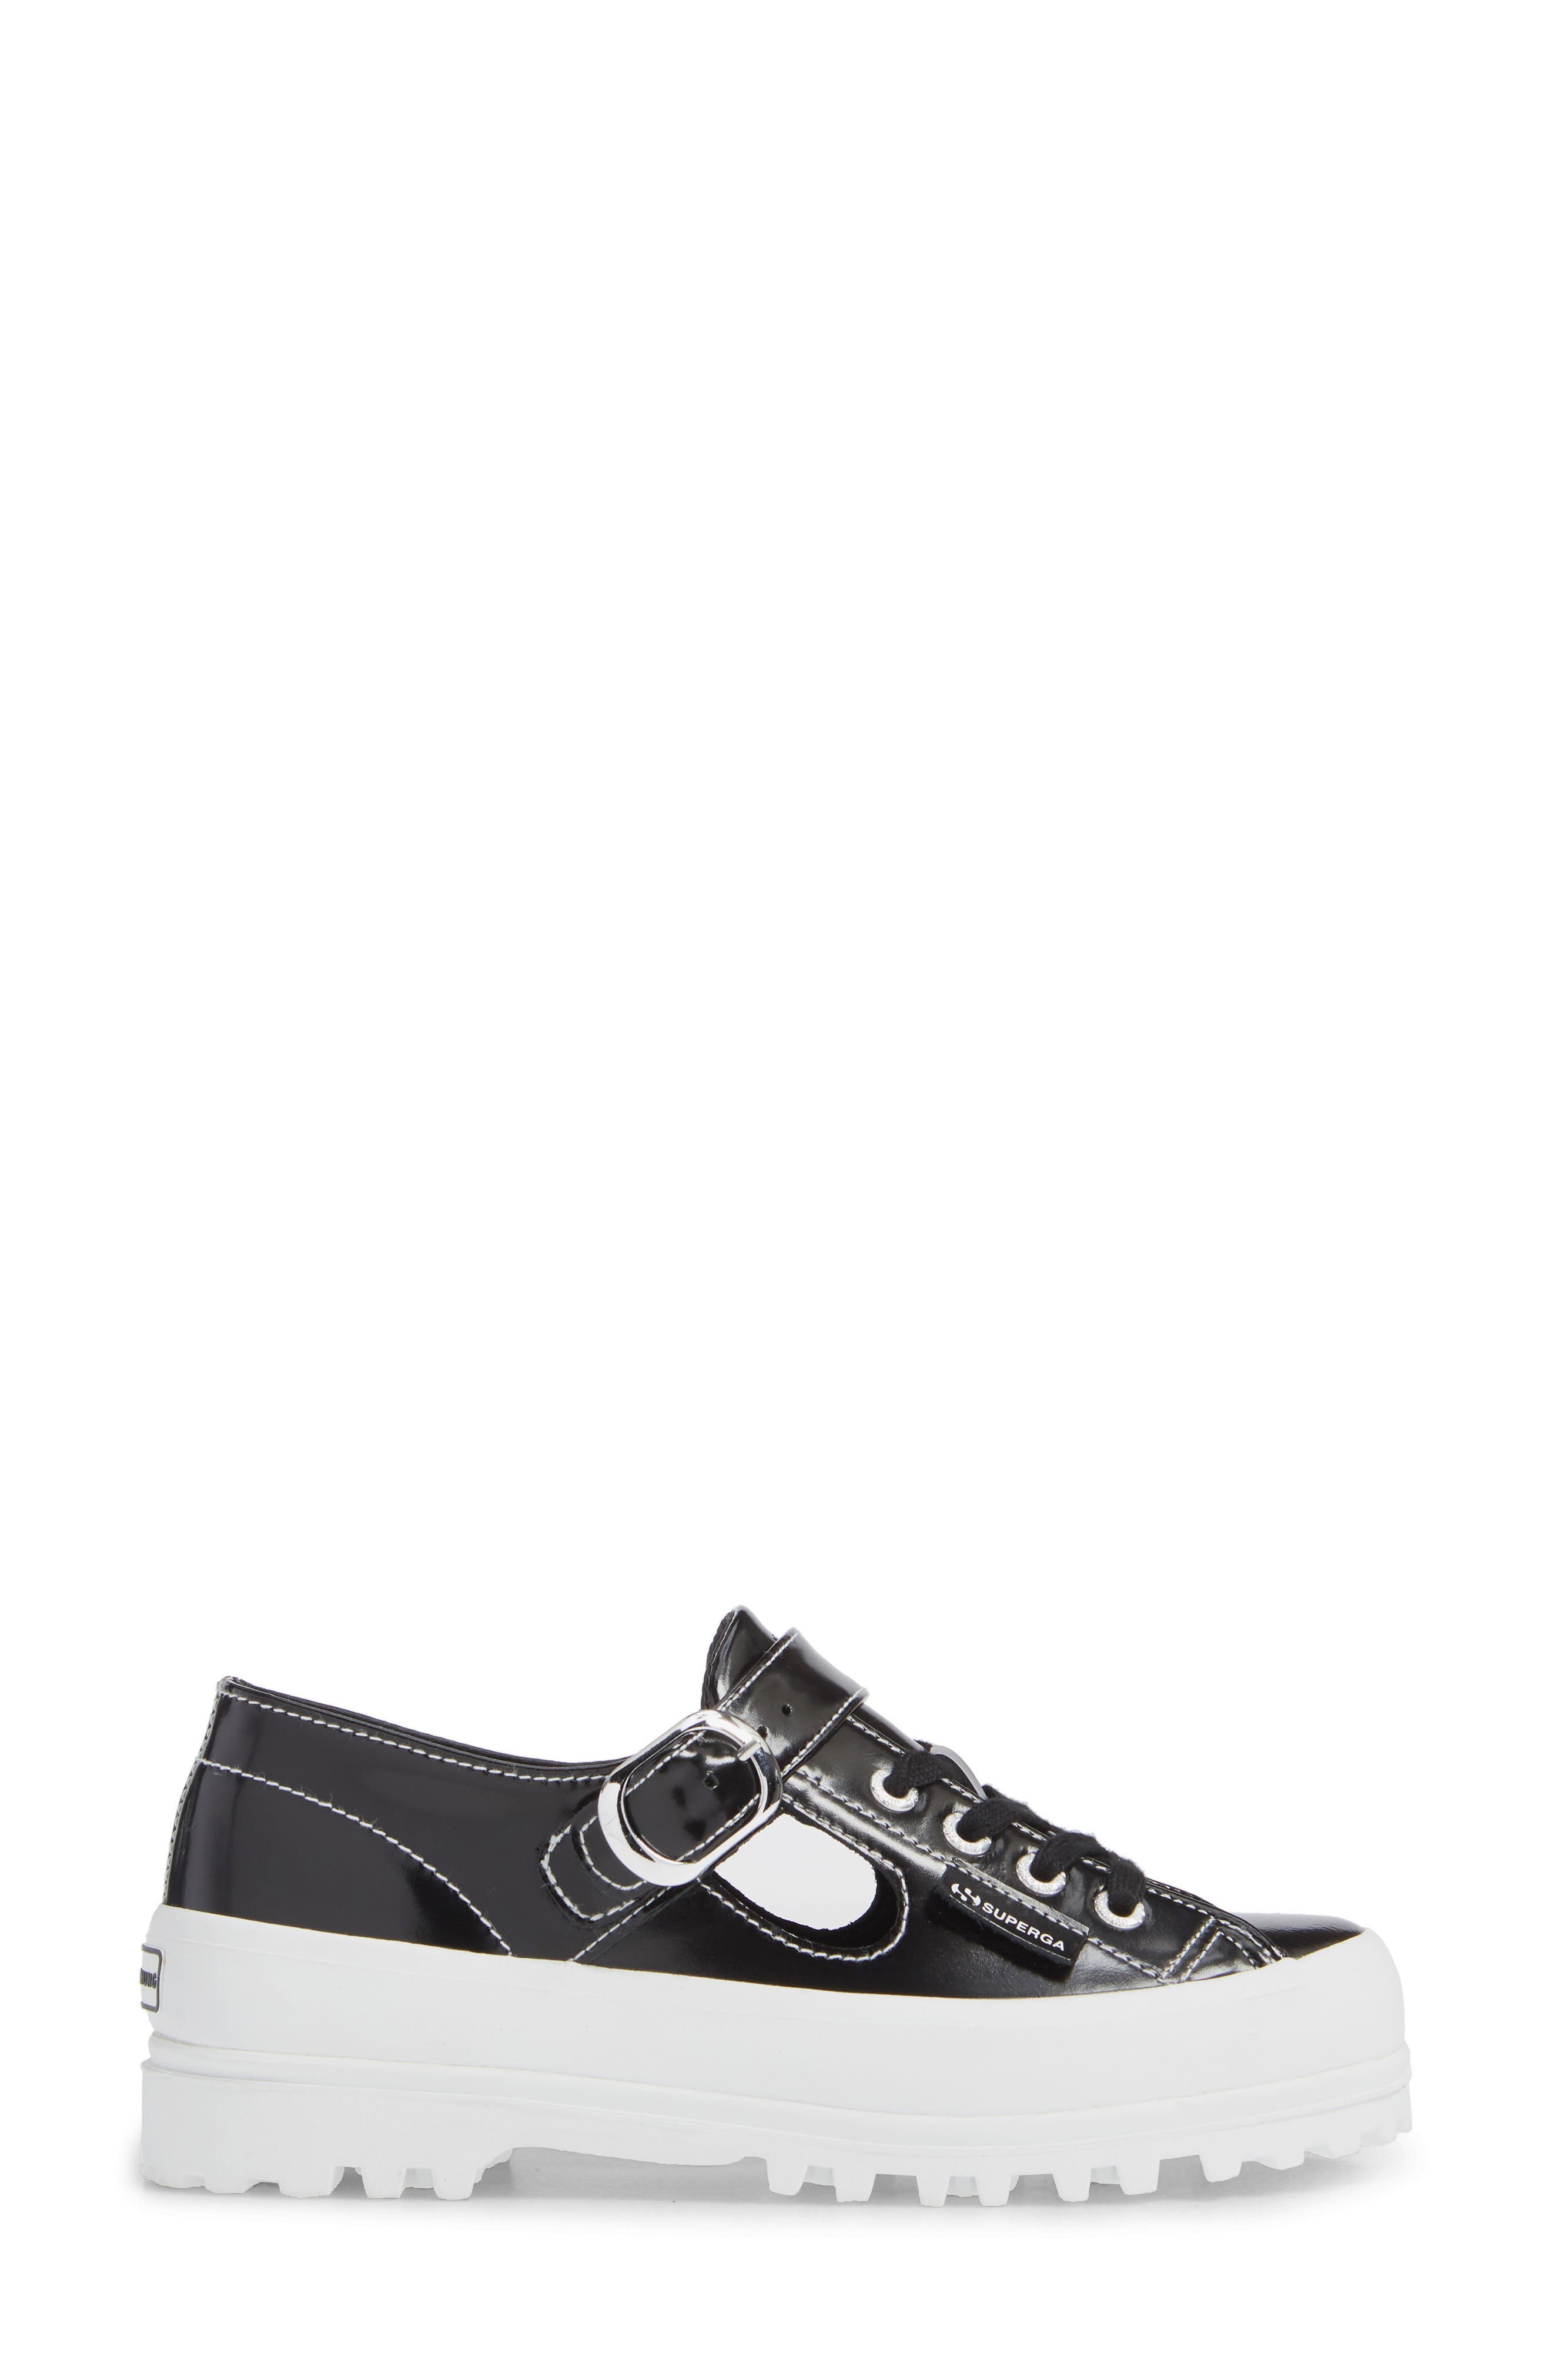 x Alexa Chung 2254 Alpinaleapatentw Platform Sneaker,                             Alternate thumbnail 3, color,                             BLACK